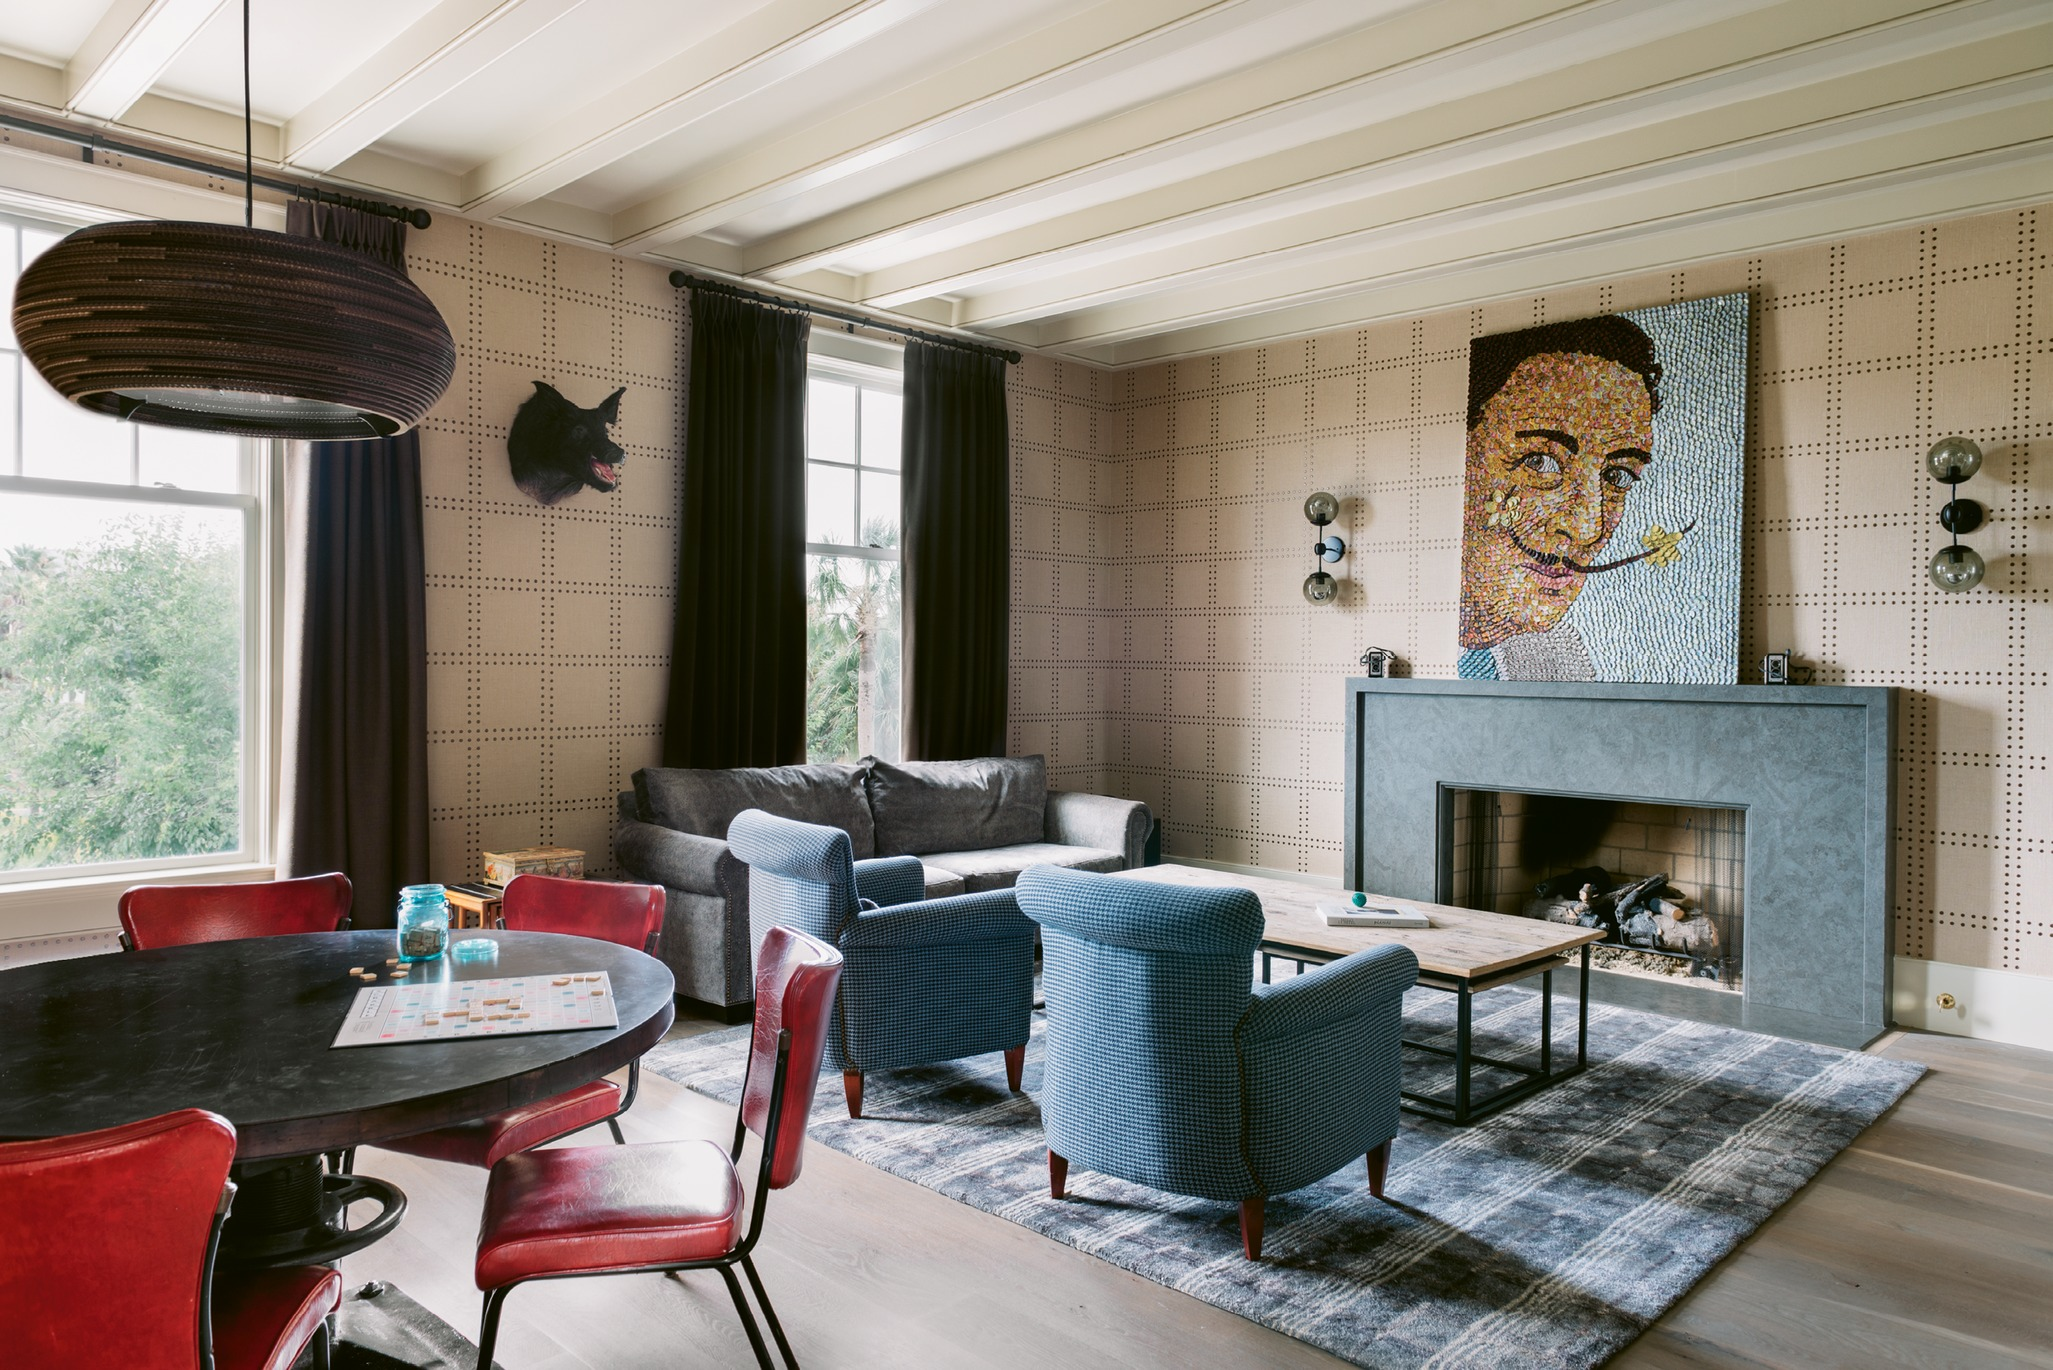 A glittering bottle-cap portrait of Salvador Dalí by local artist Molly B. Right and riveted wallpaper from Phillip Jeffries inject texture and a sense of glamour into the den.